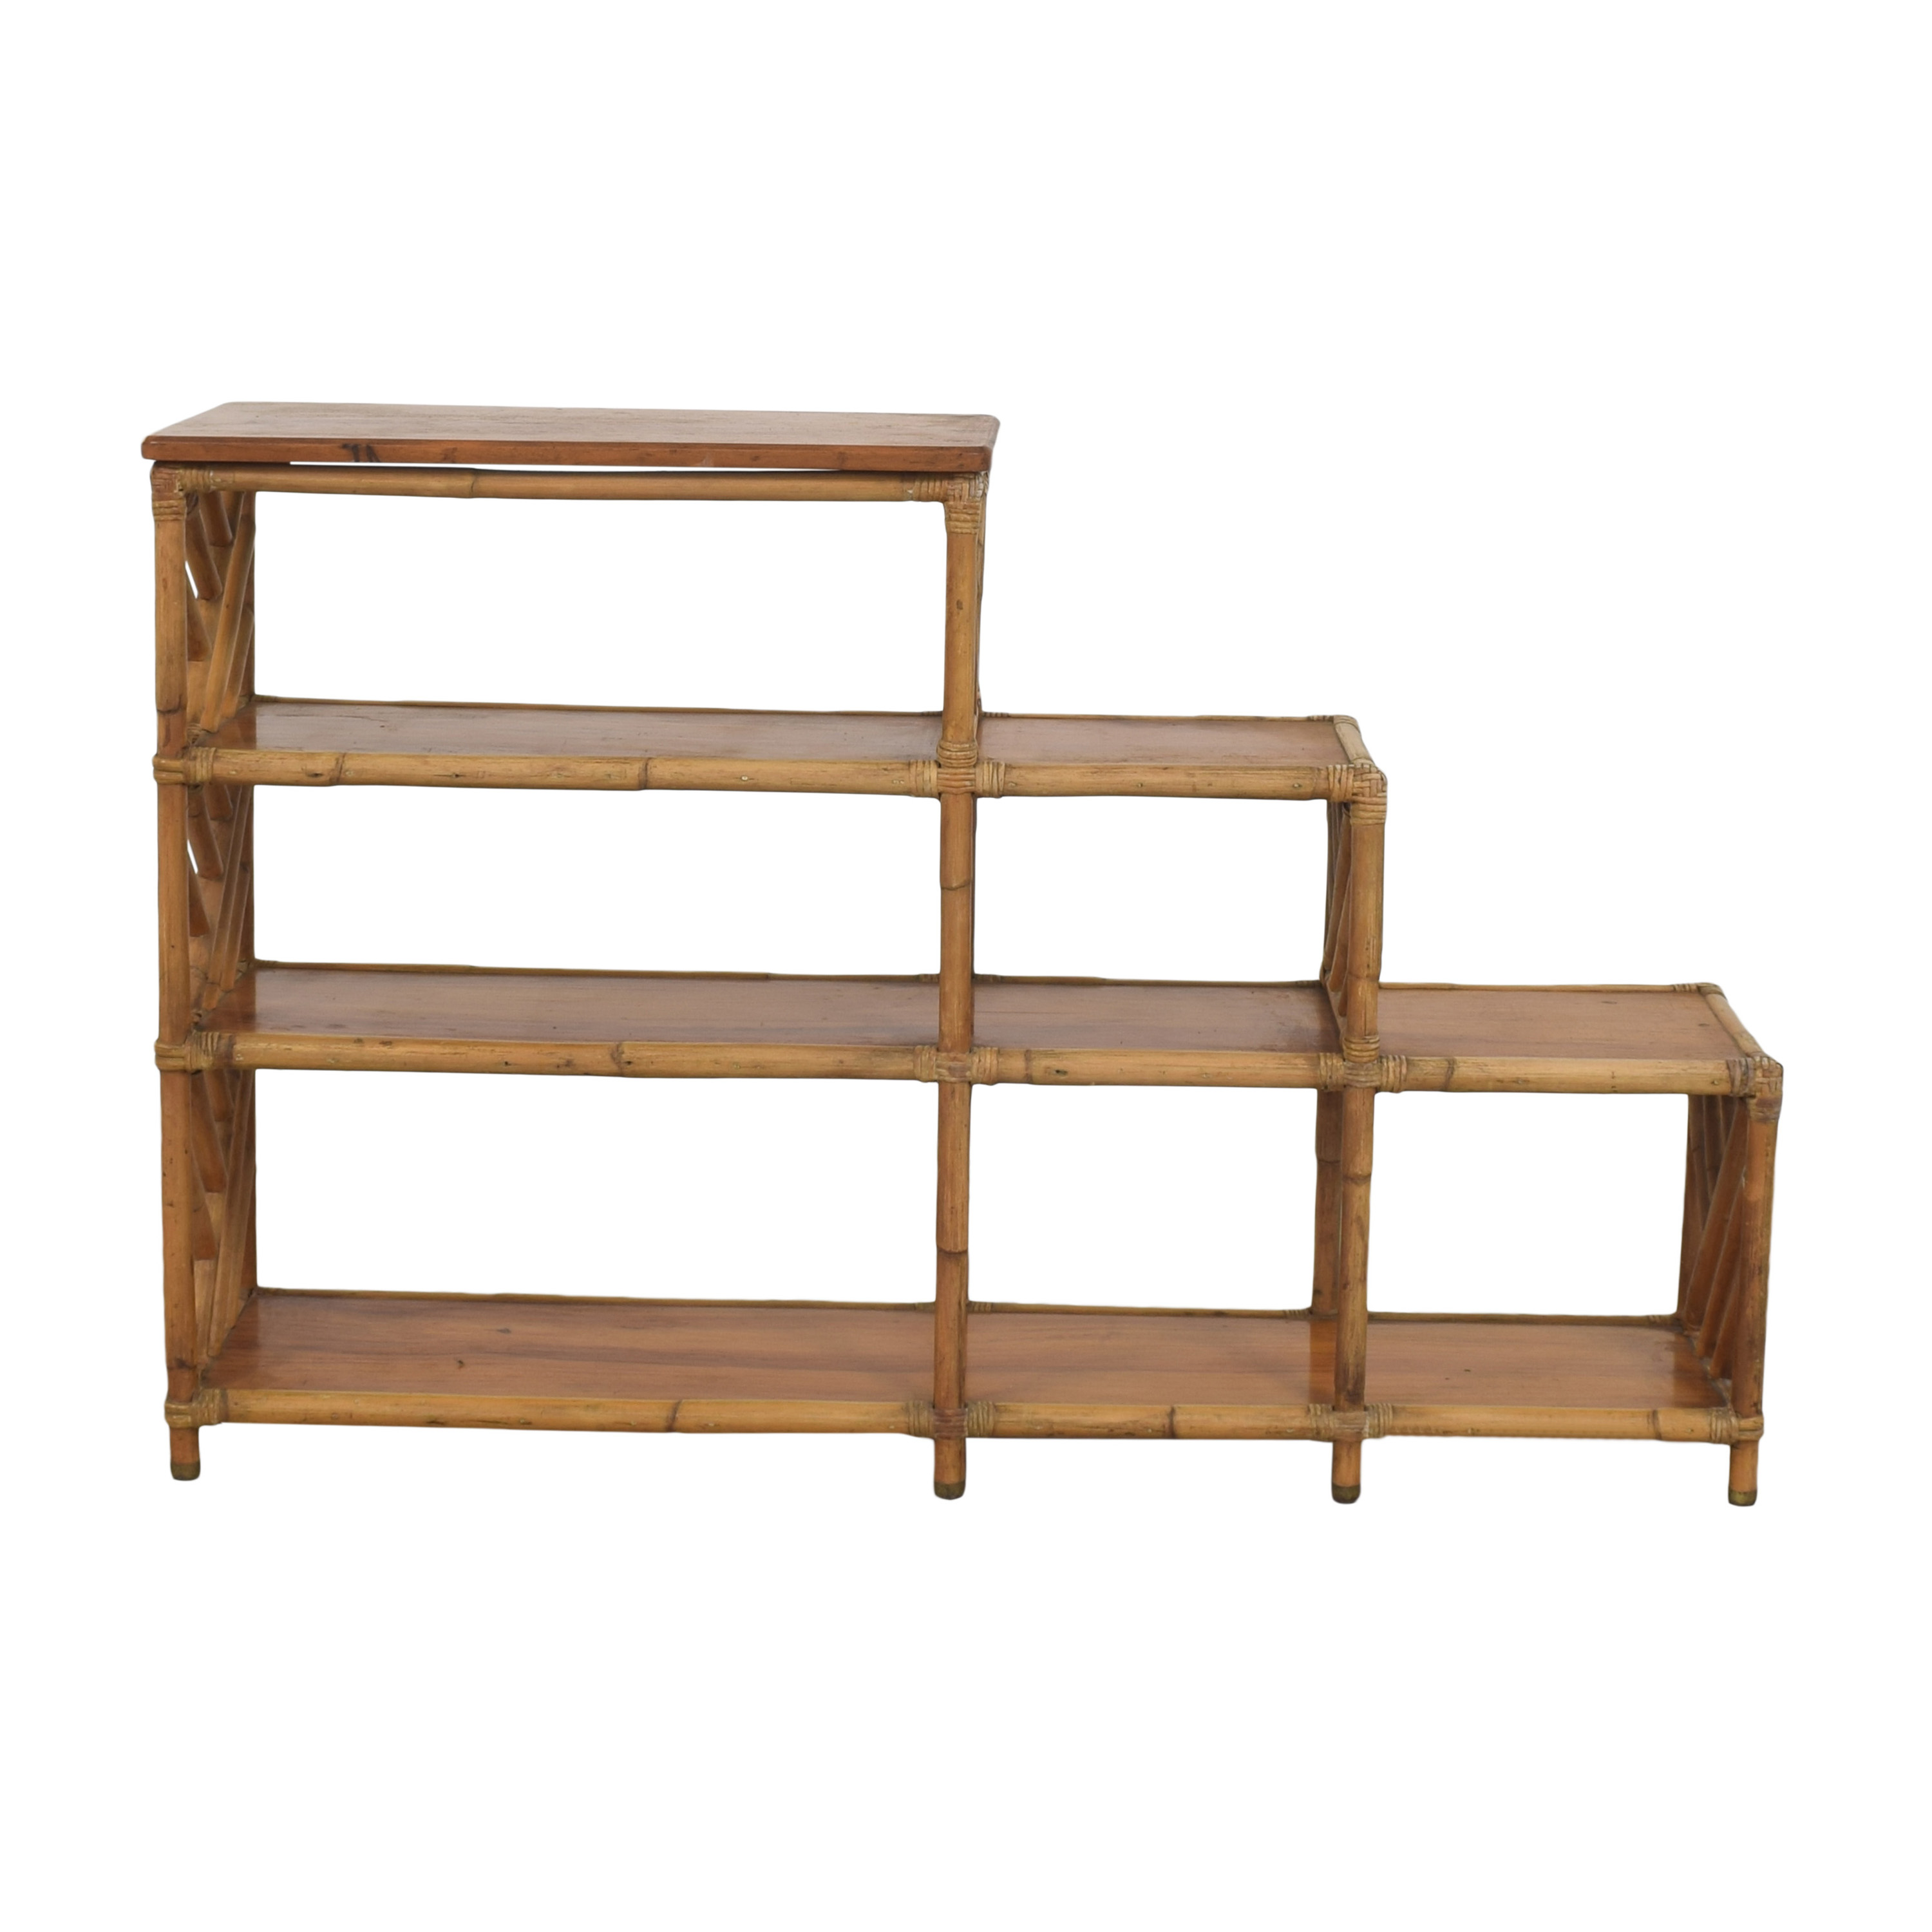 Vintage Etagere Shelves used